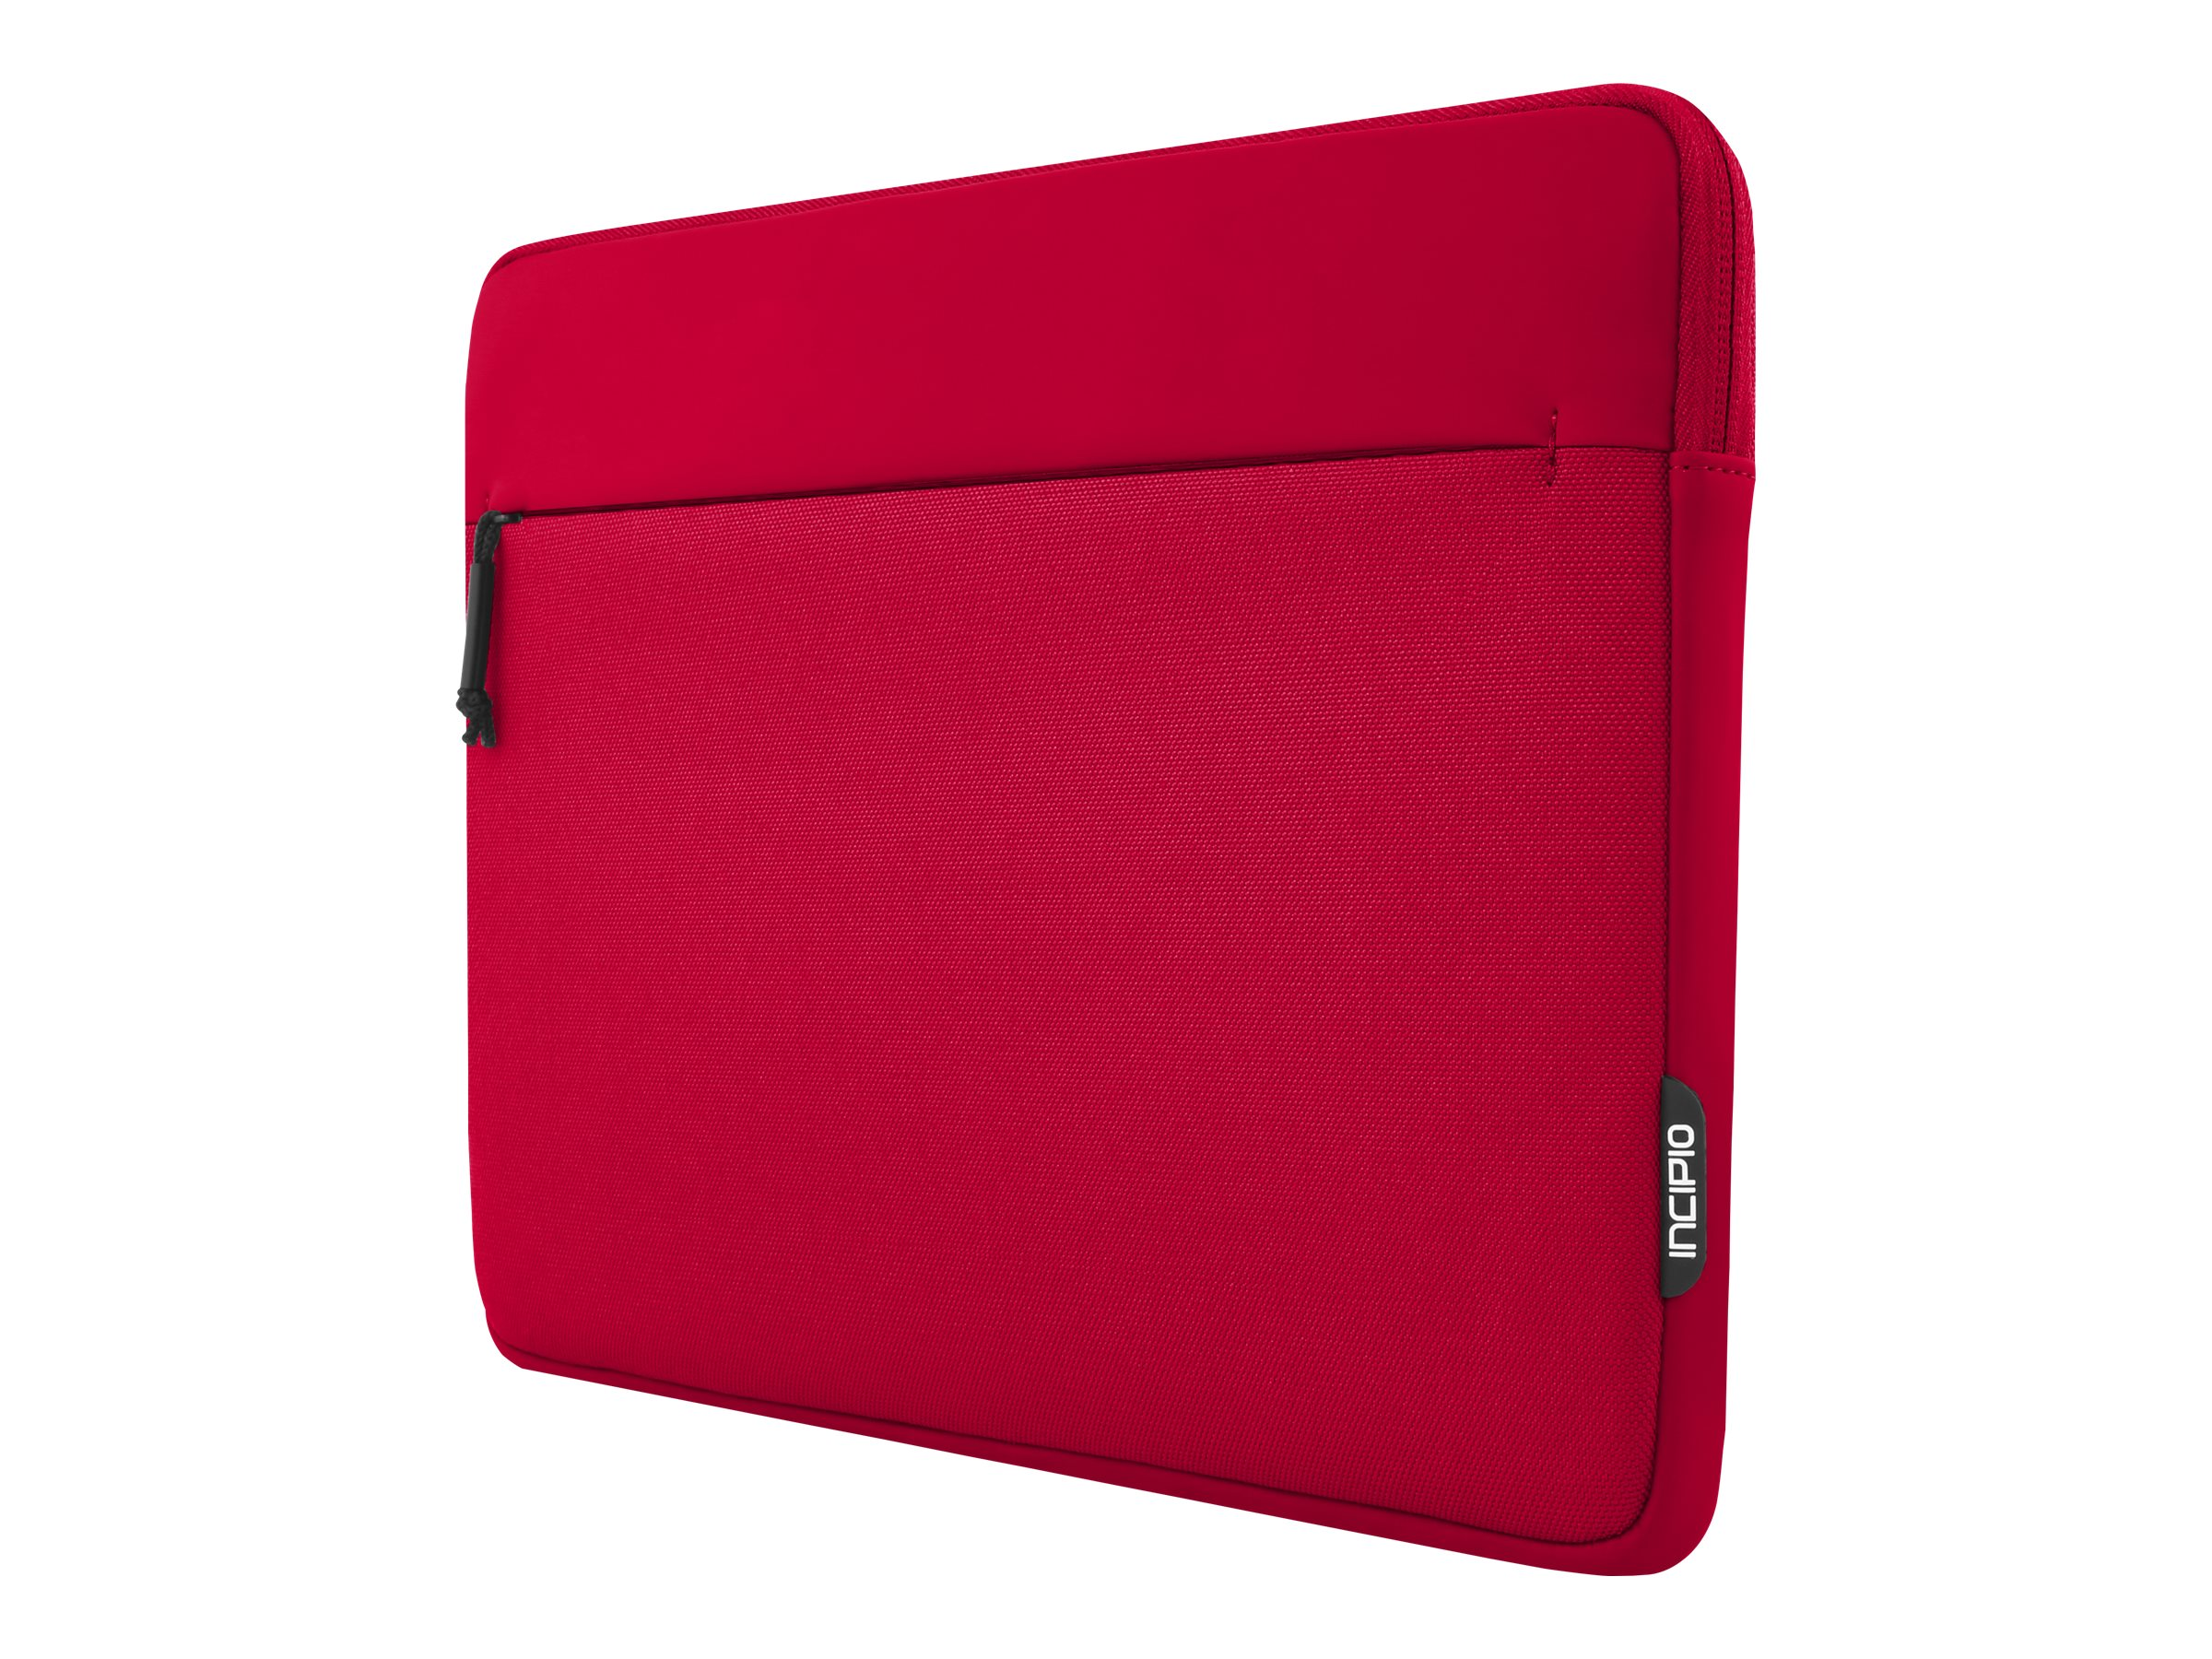 Incipio Technology IPD-292-RED Image 1